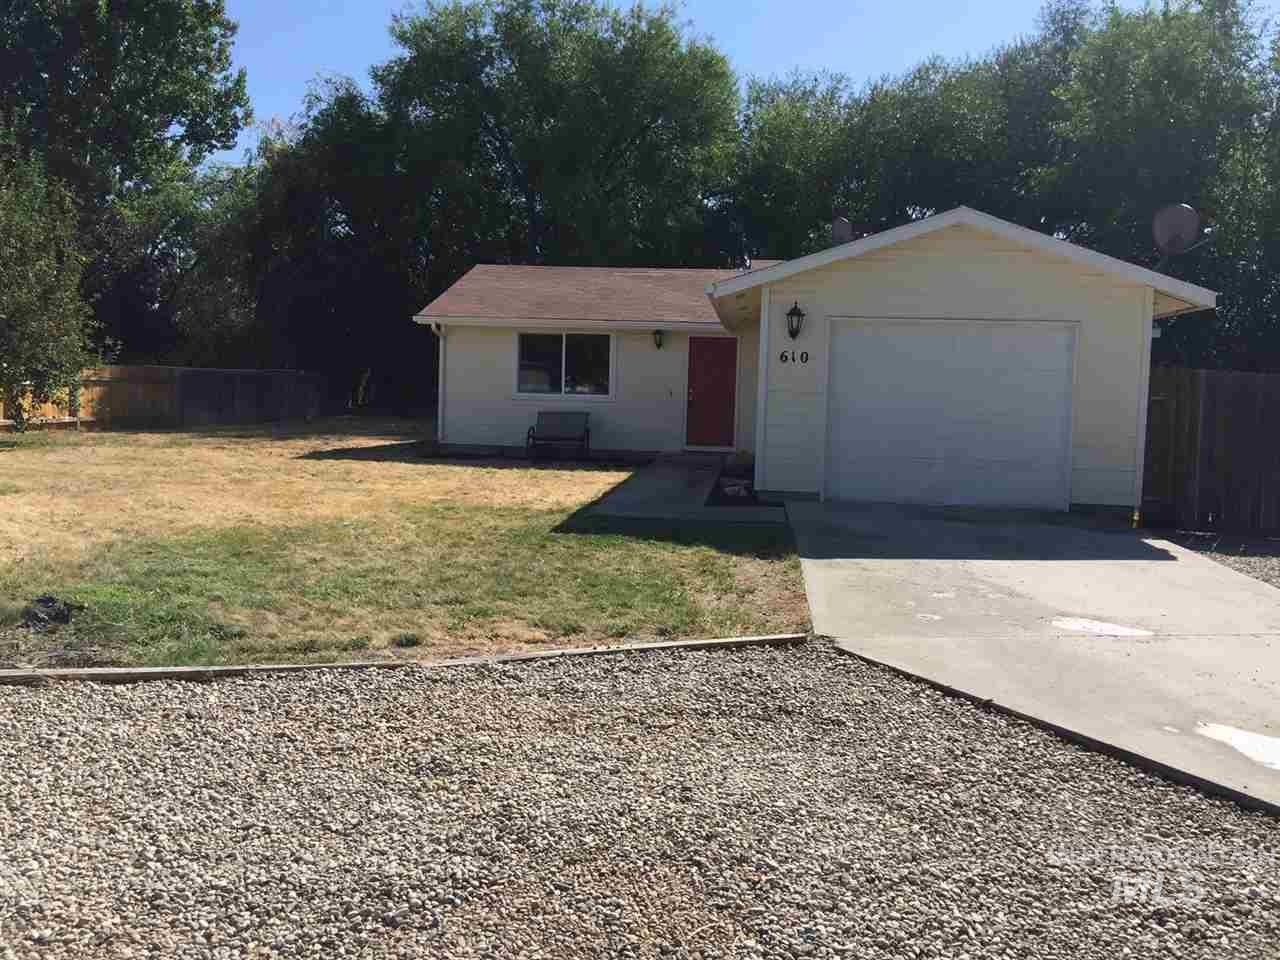 610 E Willow Circle, Middleton, ID 83644